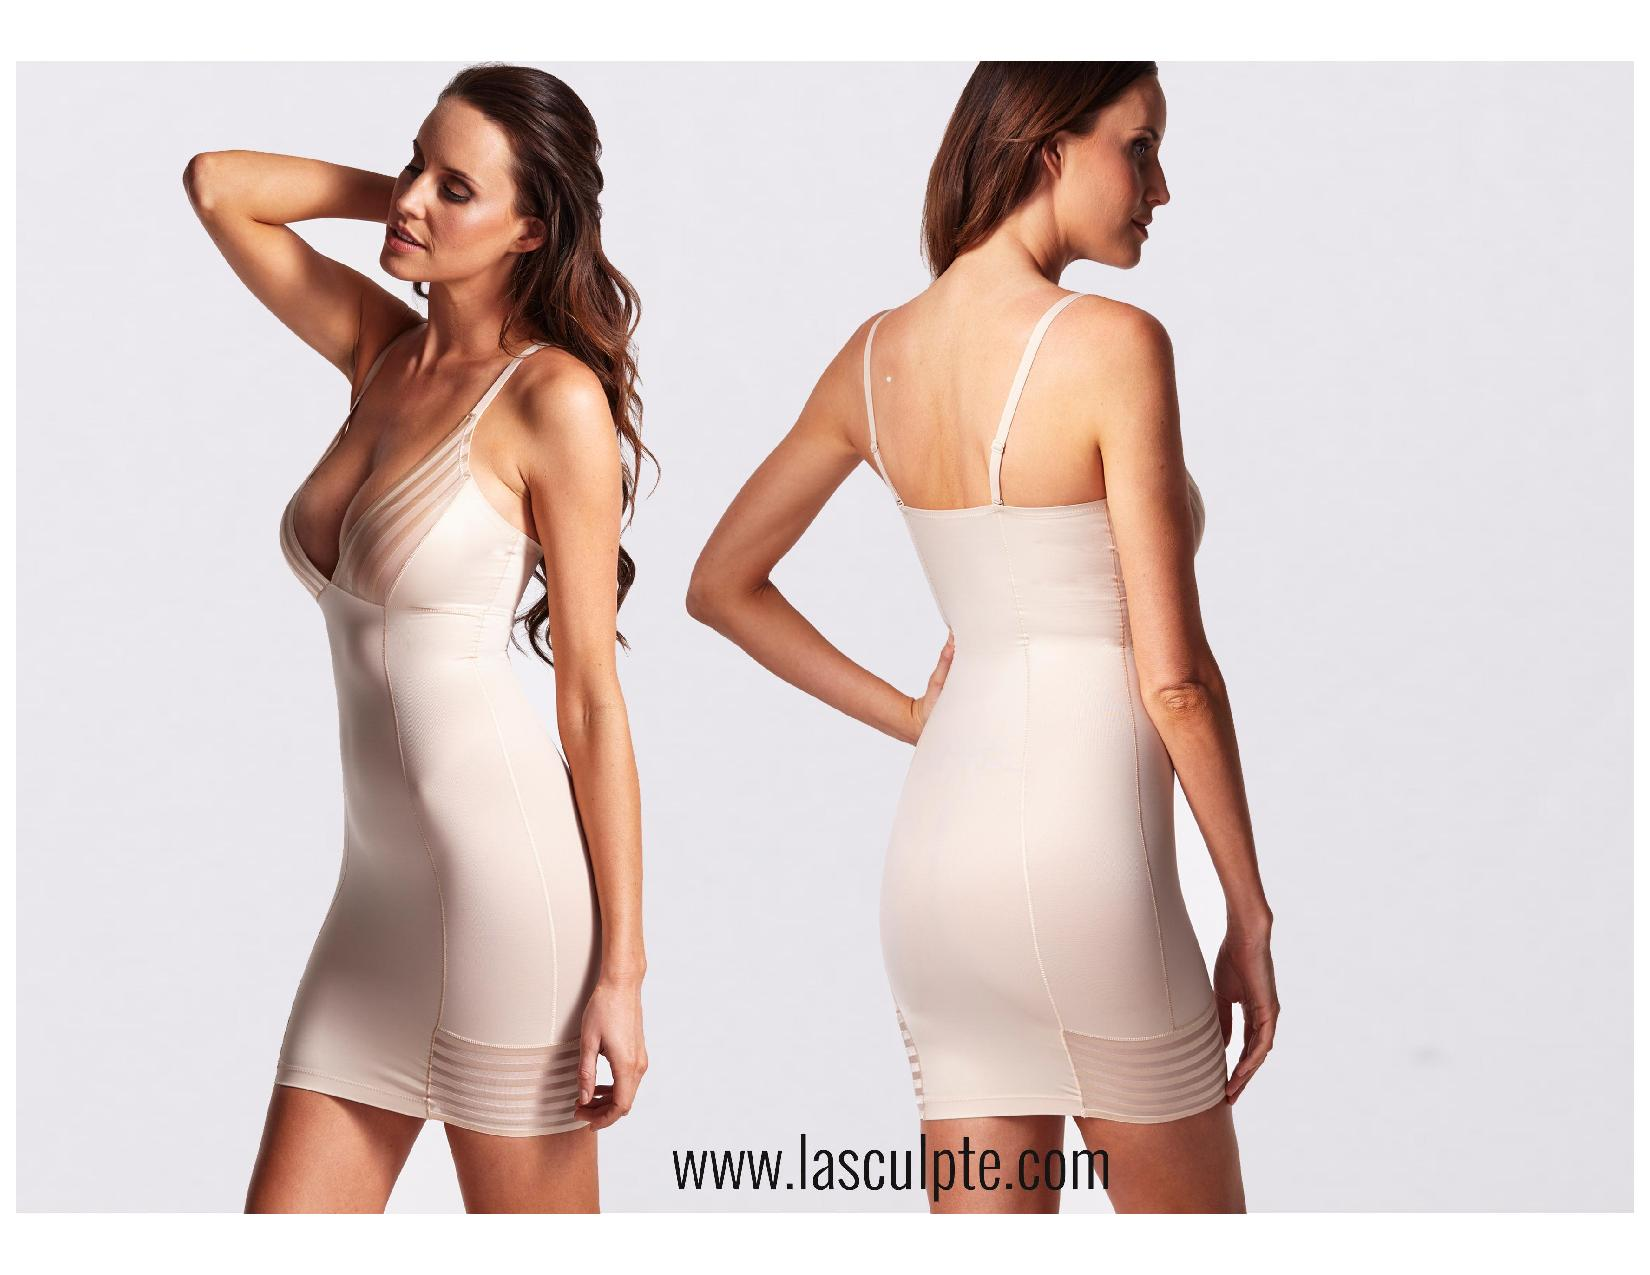 Lasculpte lookbook - Shapewear-page-003